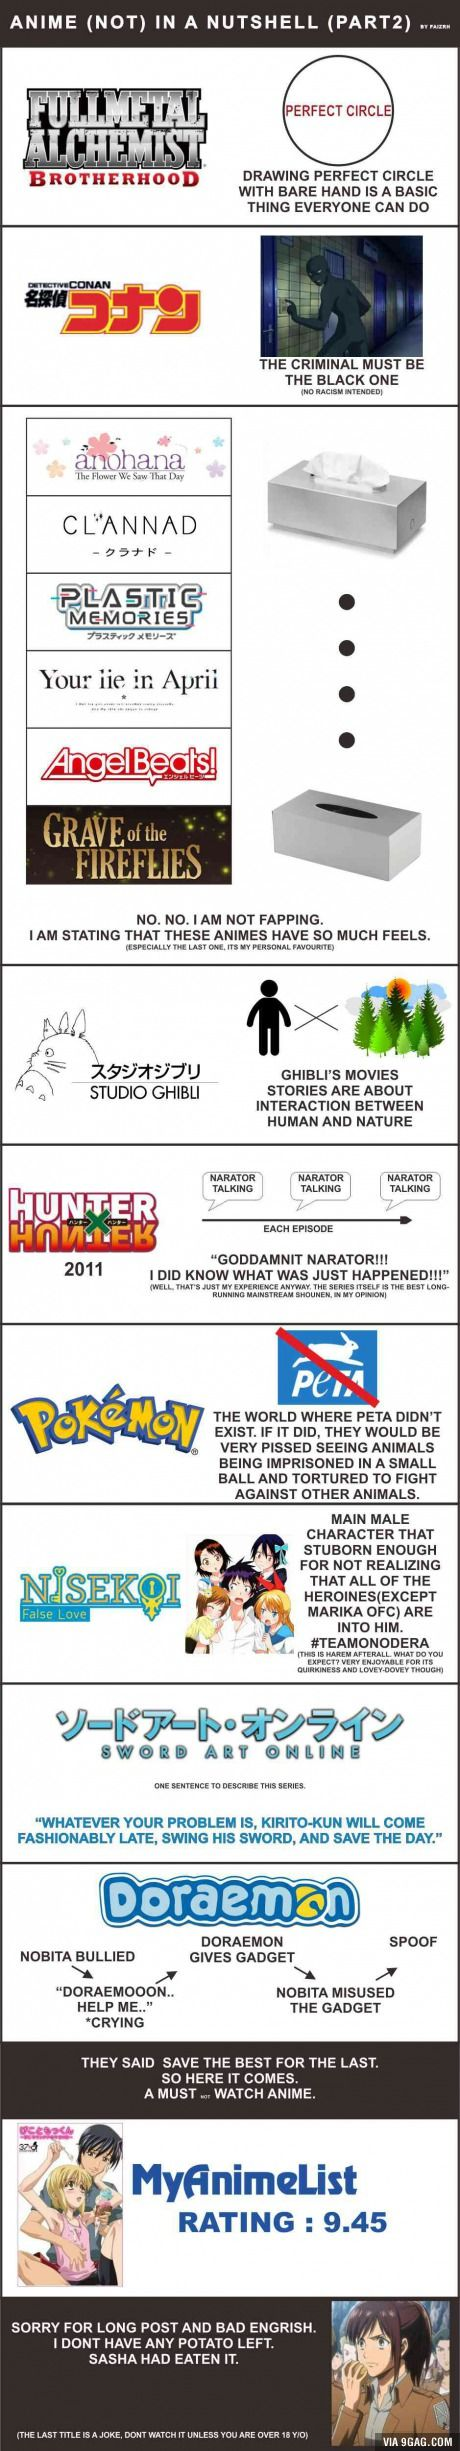 Anime in a nutshell (Part2)- whoever made this f#@$ you for the bottom one jeeeeeeezzz.